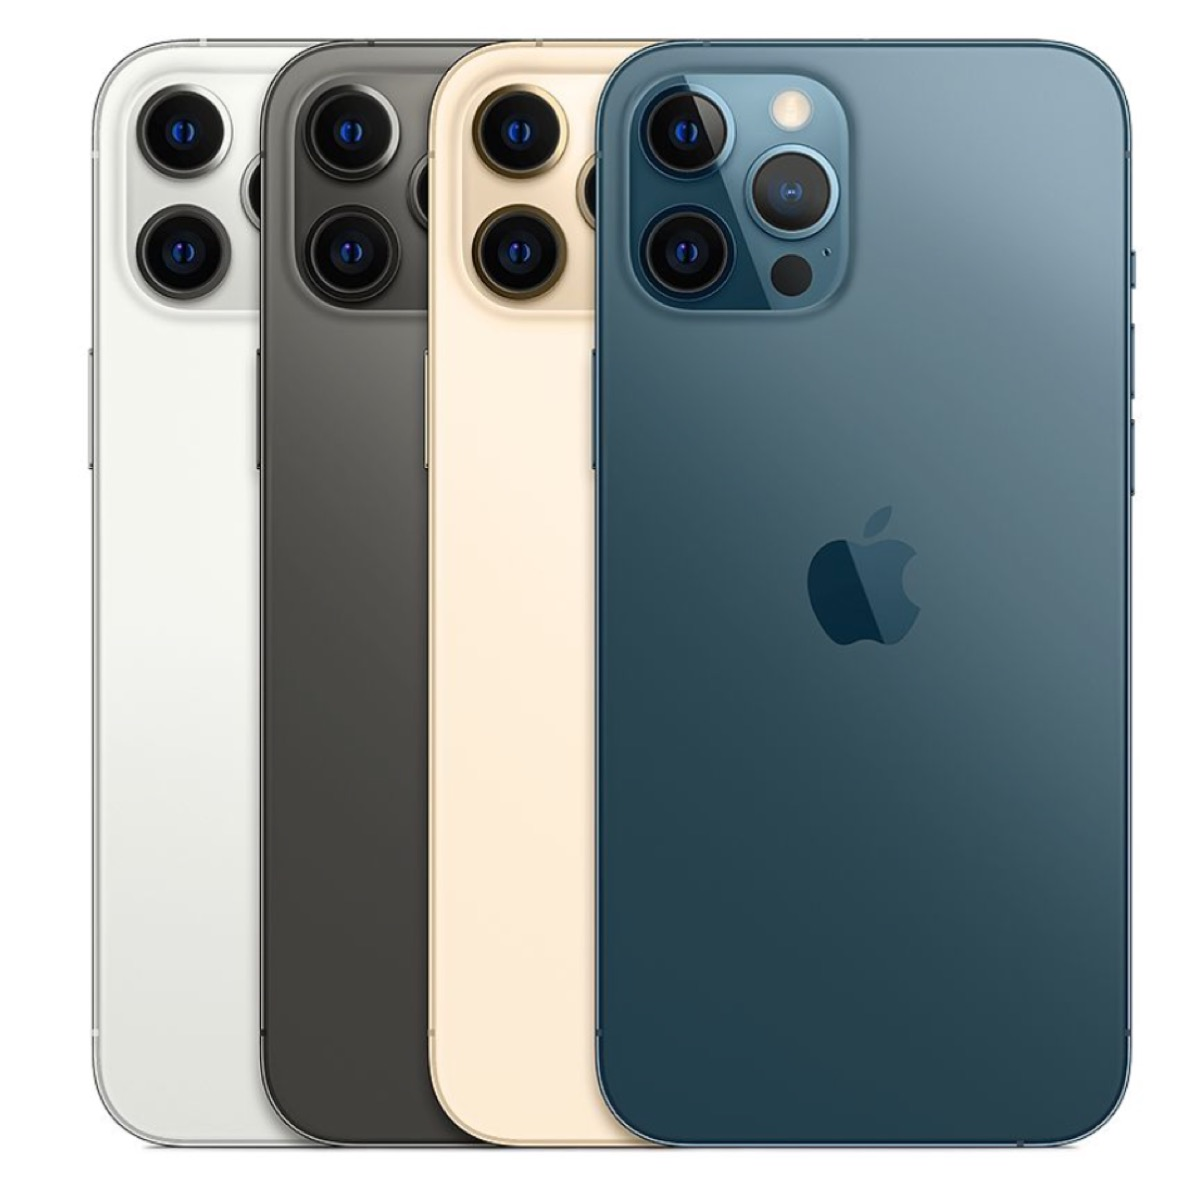 iPhone 12 Pro Max in difference colors